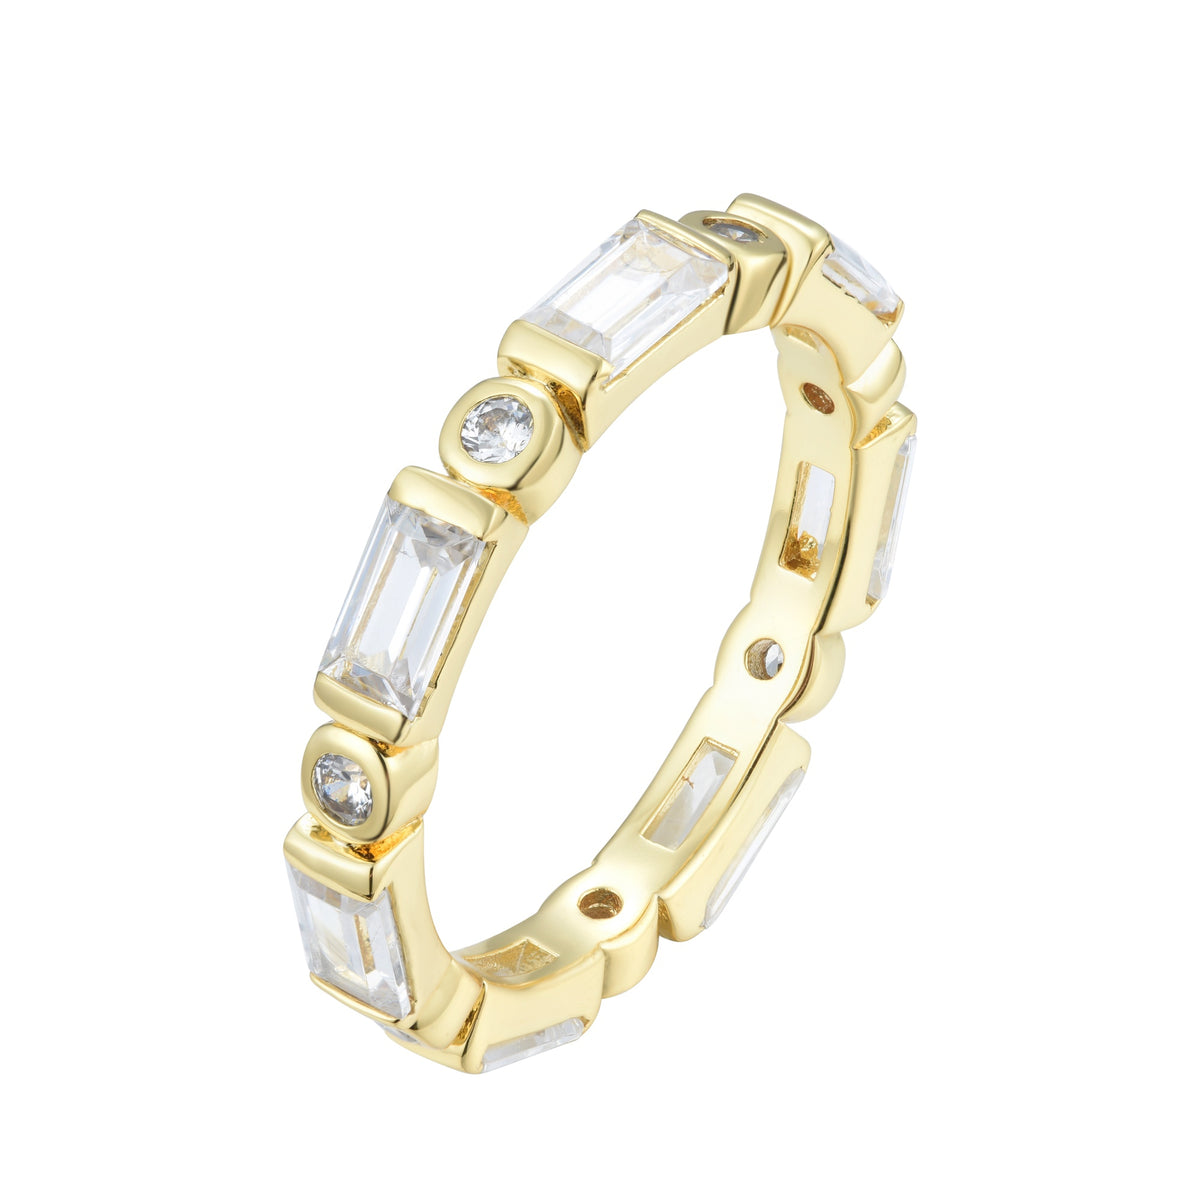 Ferentina | Banoffee Ring | 925 Silver | White CZ | 18K Gold Plated